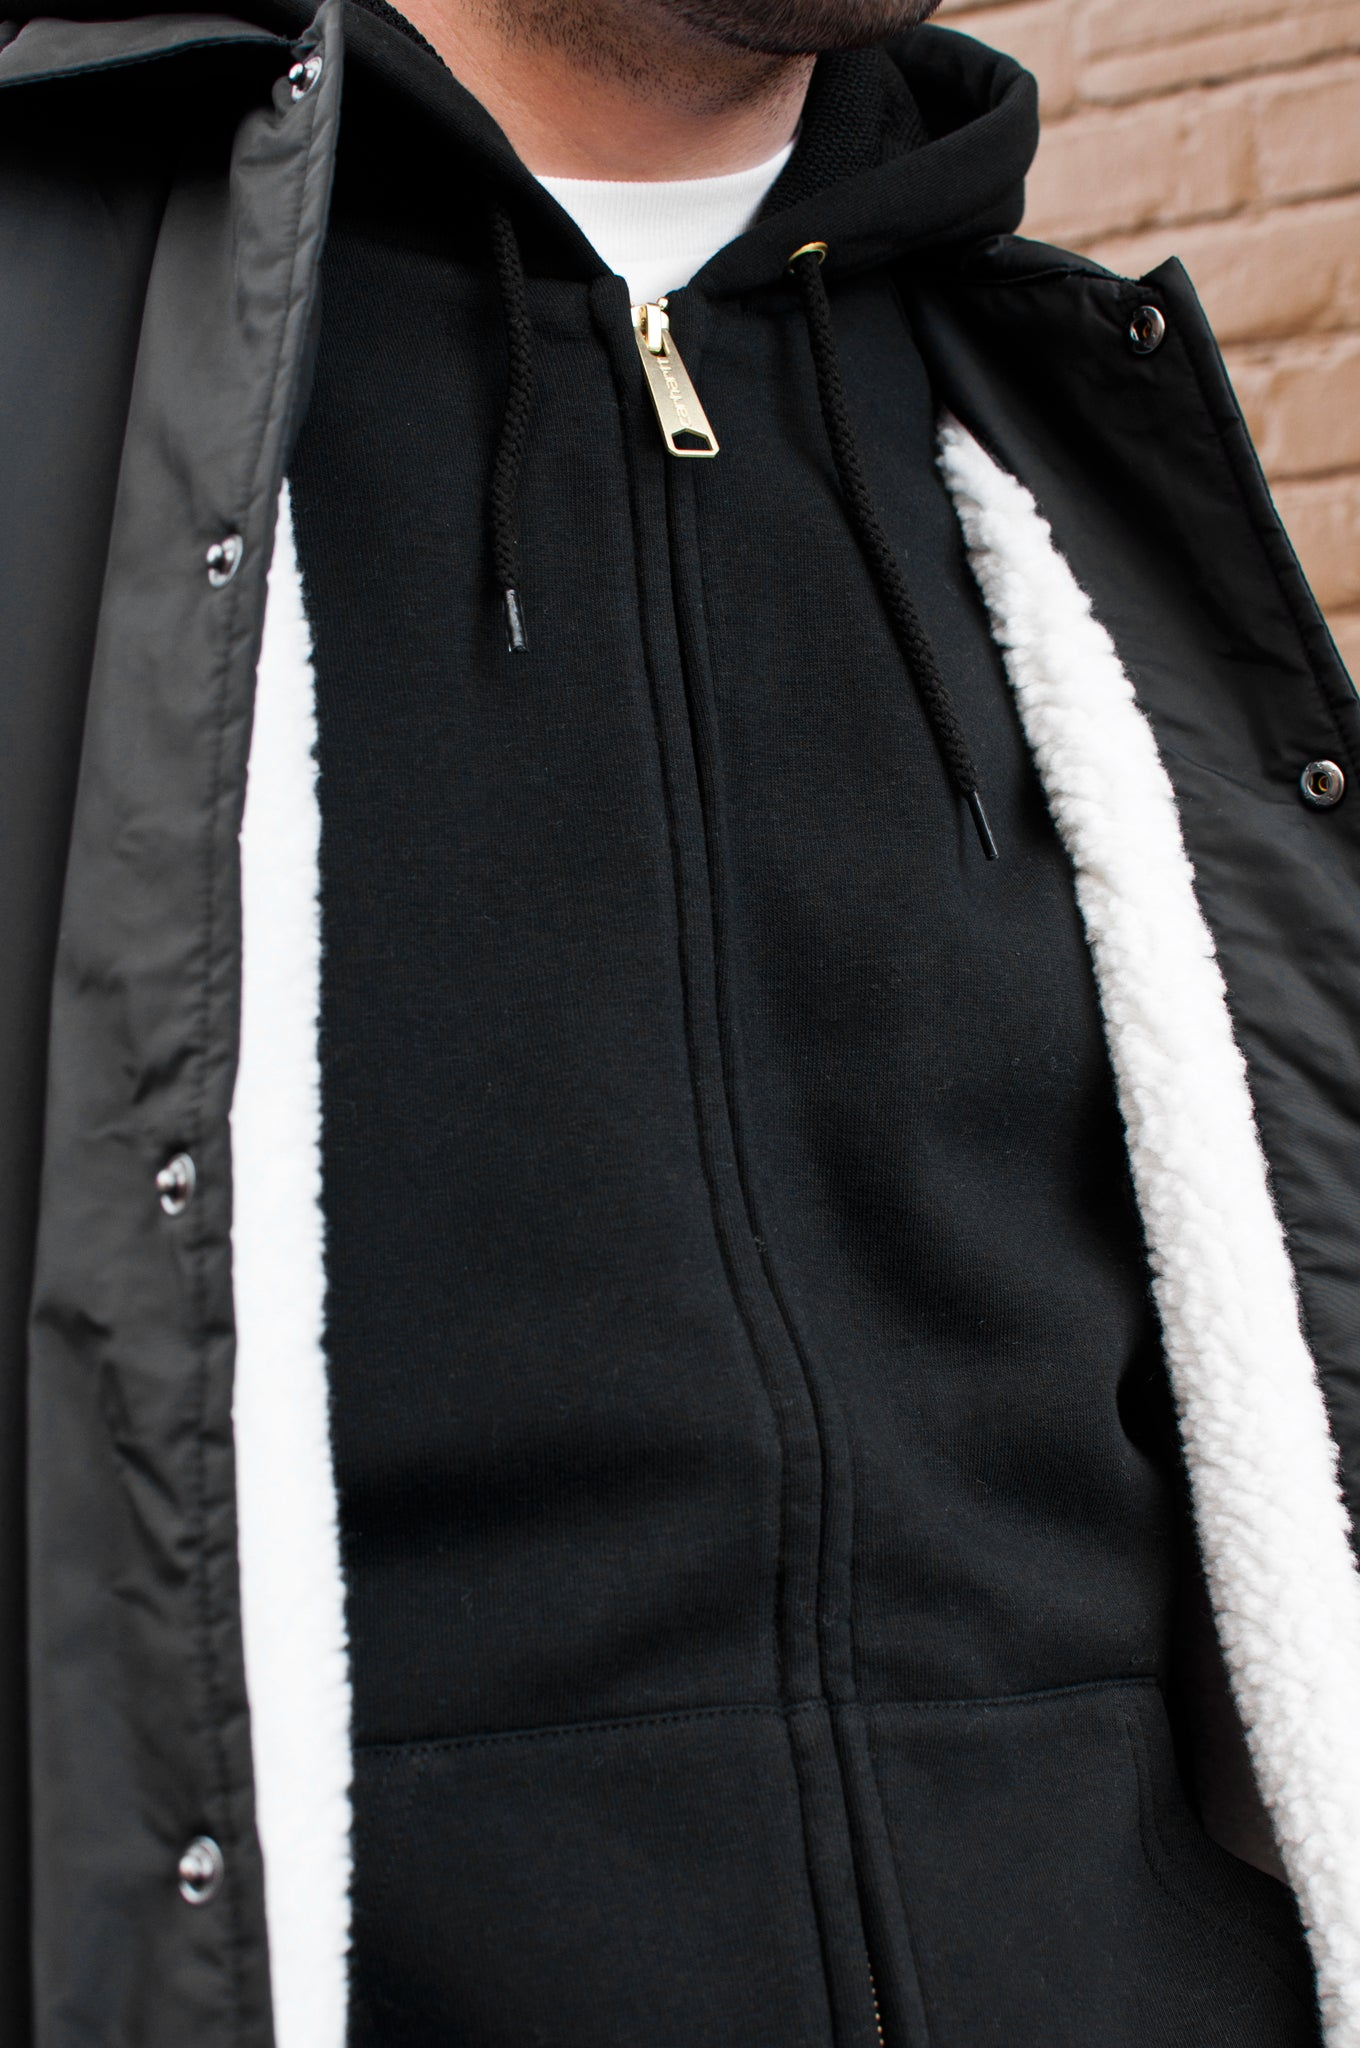 Carhartt W.I.P. Hooded Thermal Lined Jacket Black at shoplostfound